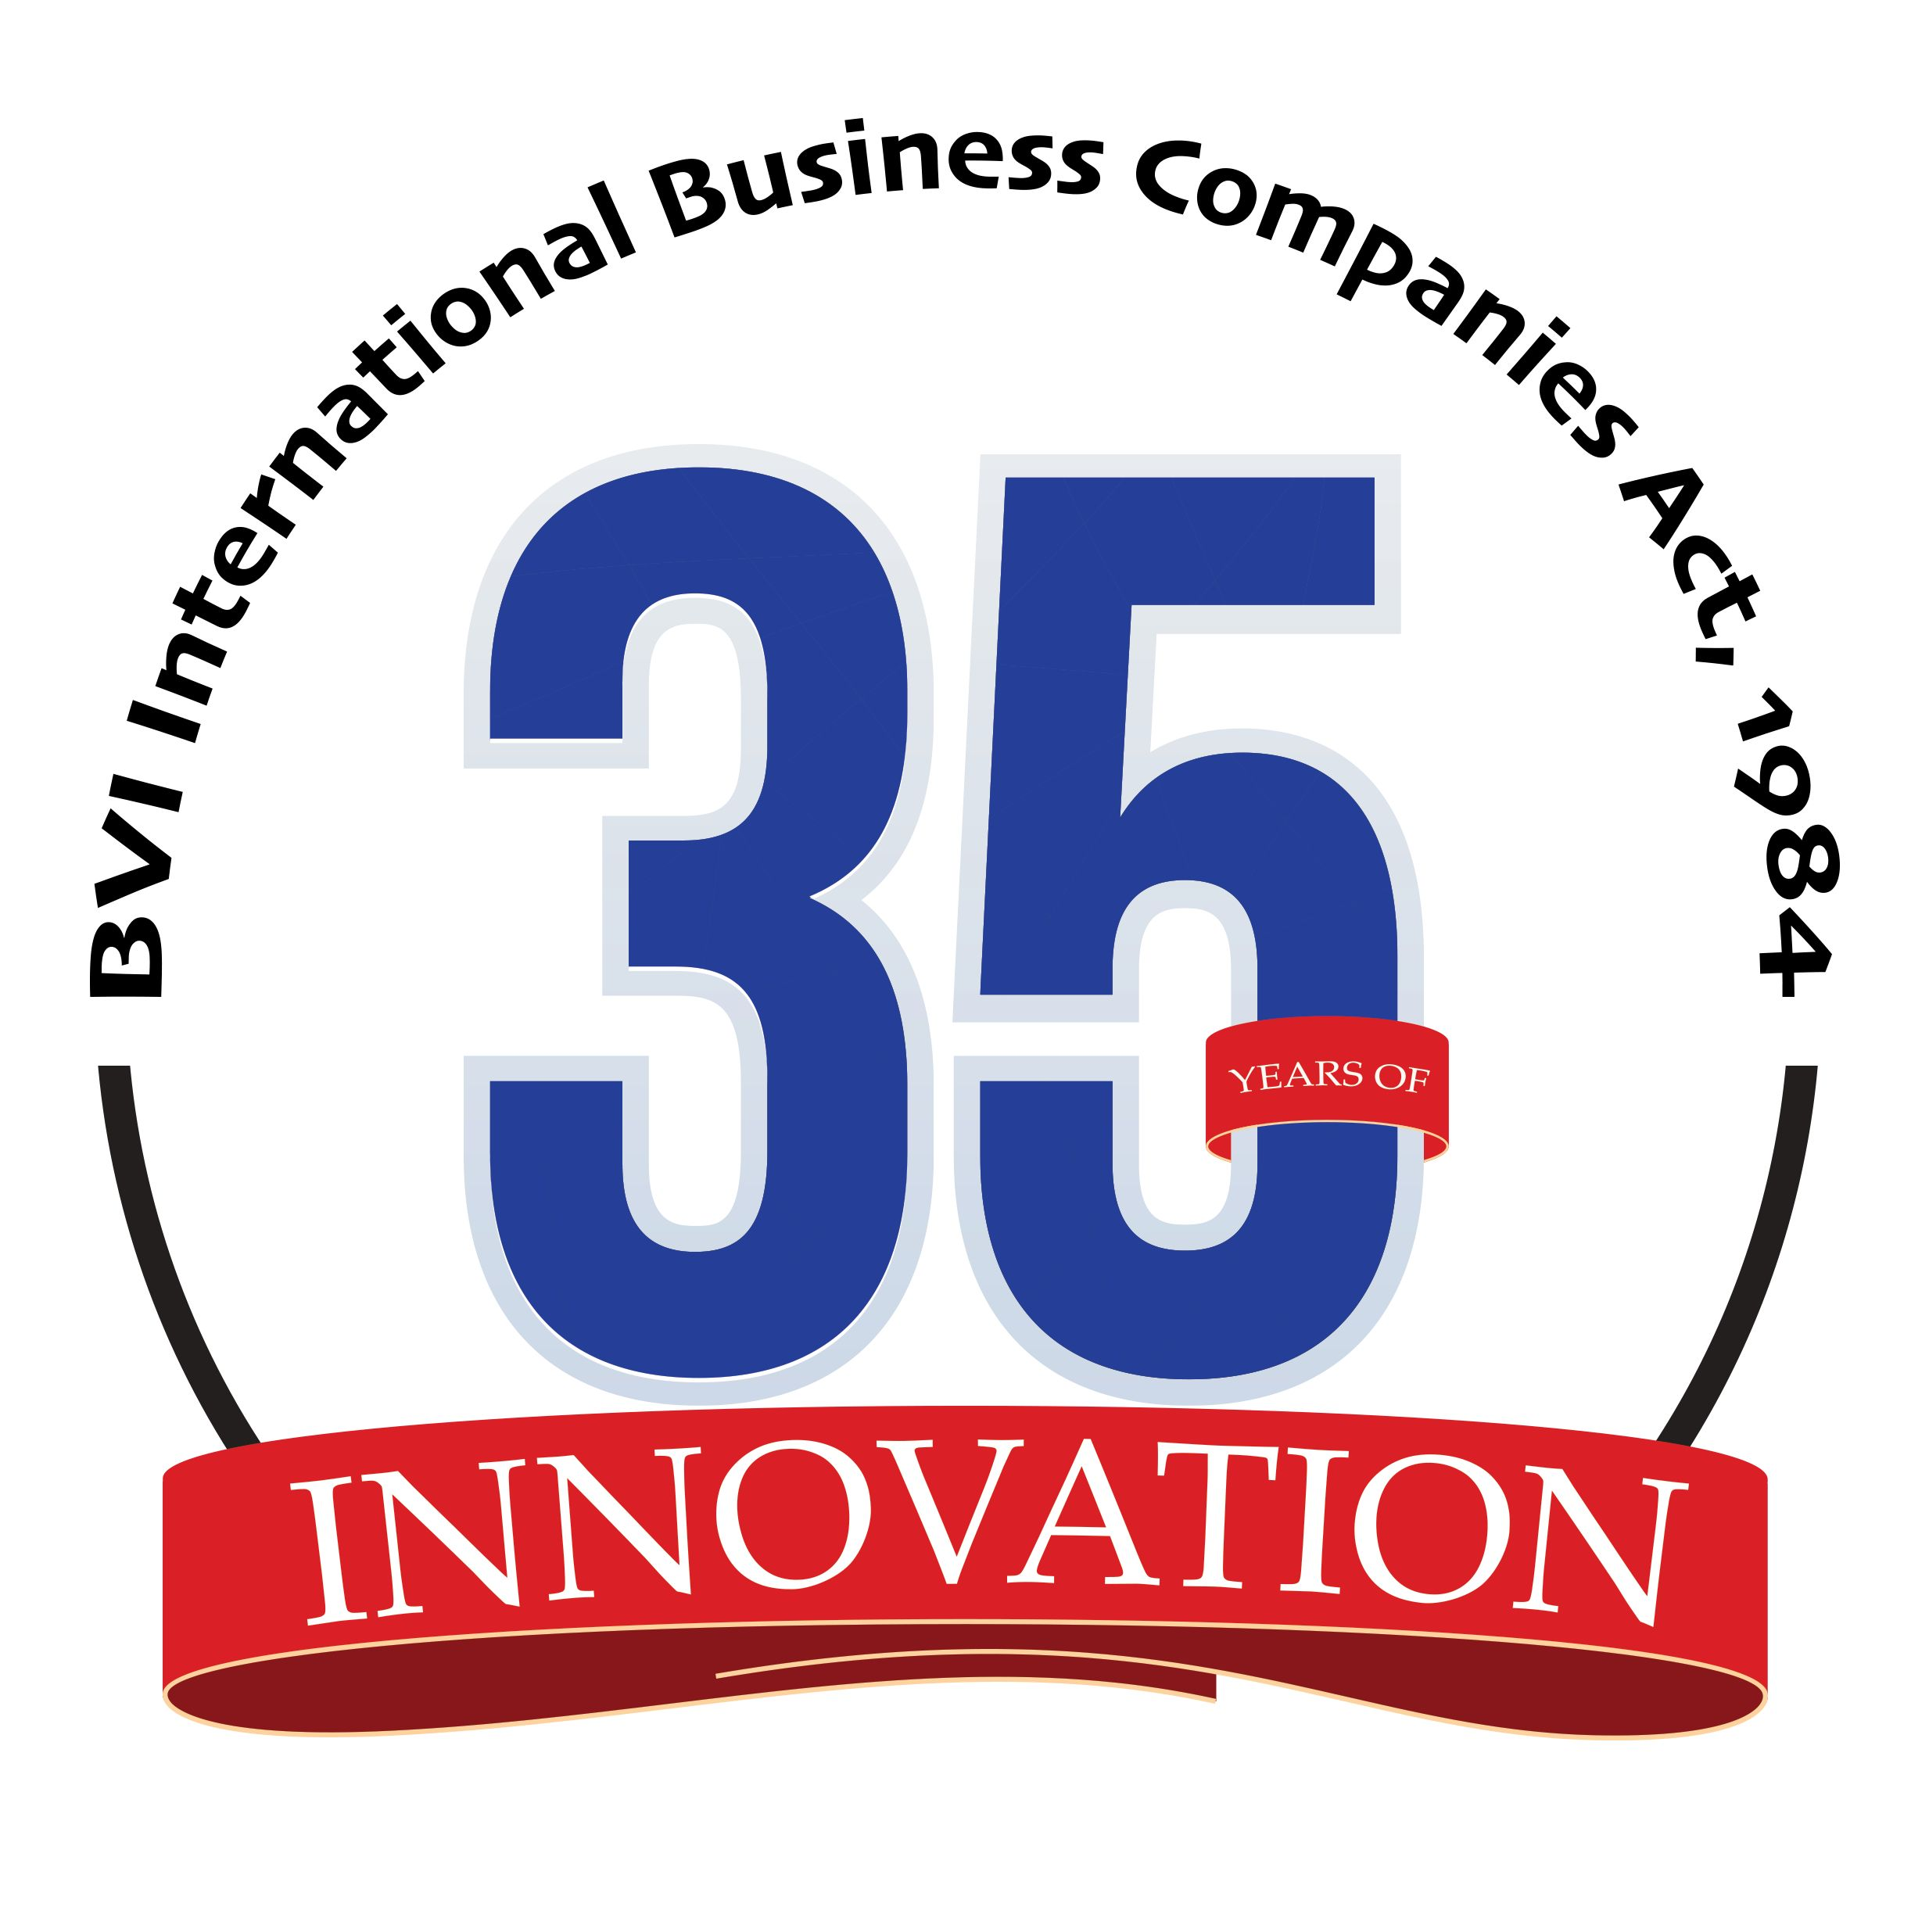 vg-bvi-international-business-companies-act-1984